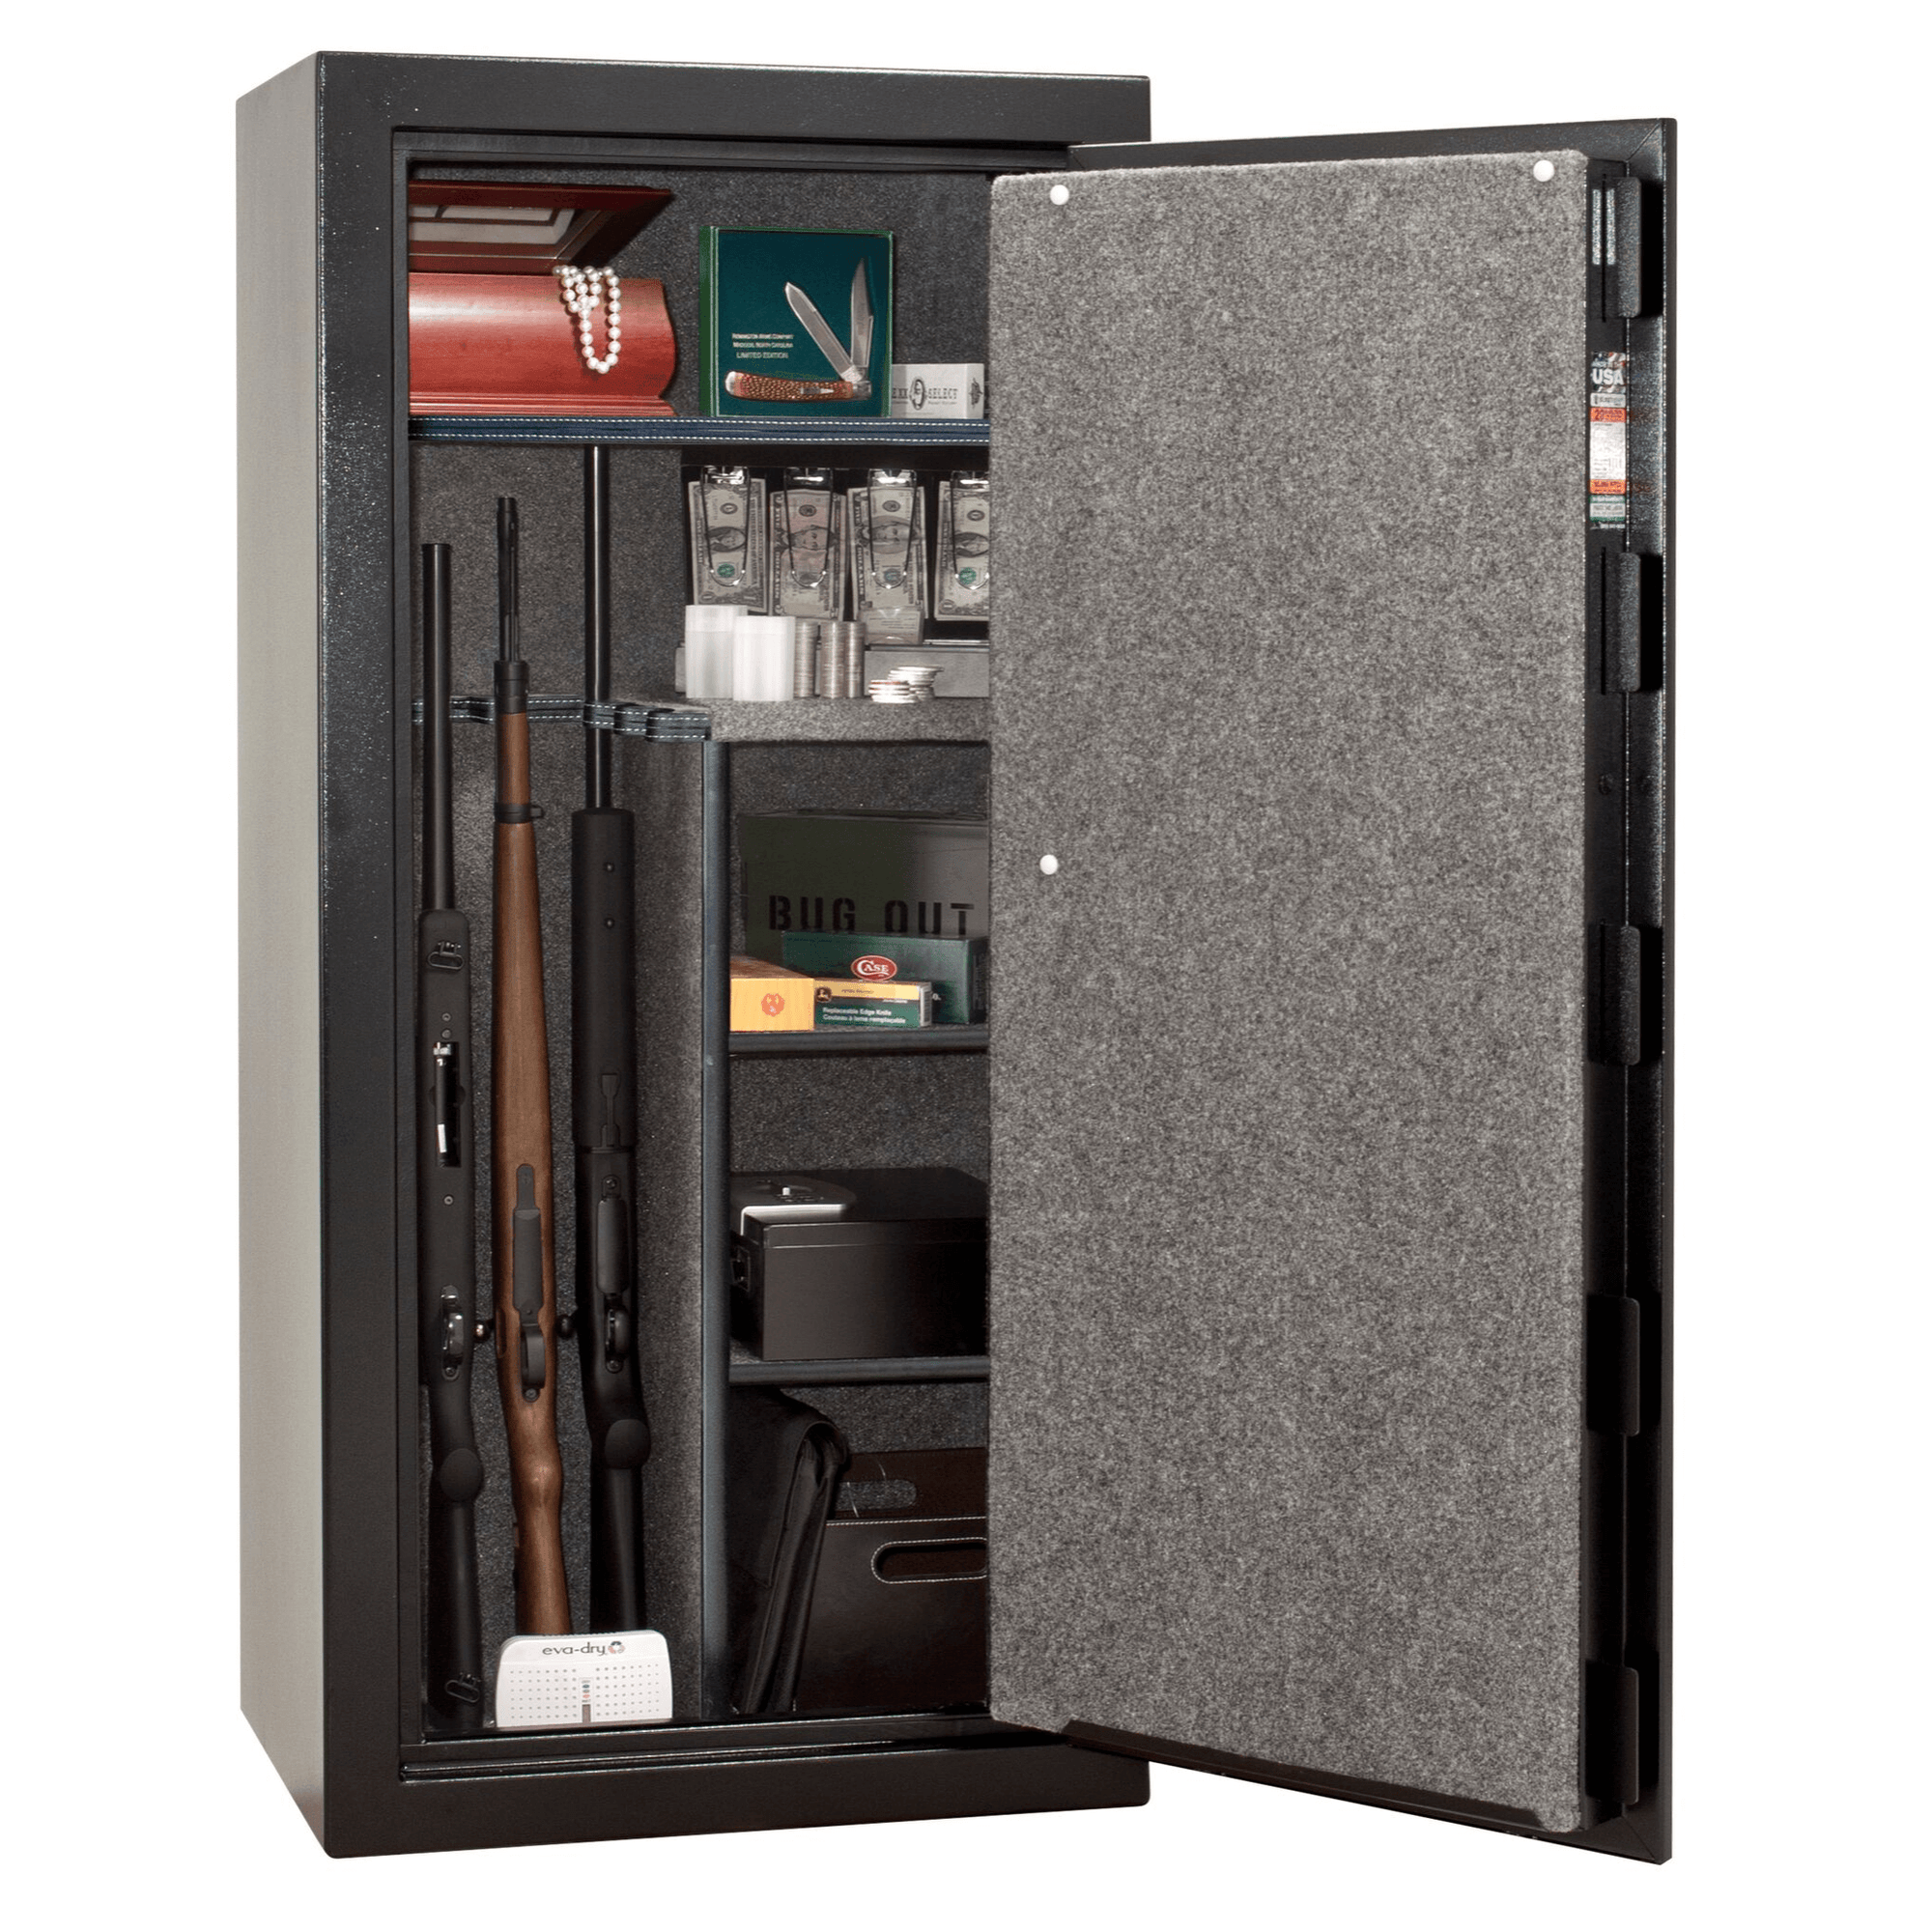 "Centurion | 24 | Level 1 Security | 30 Minute Fire Protection | Black | Black Mechanical Lock | 59.5""(H) x 28.25""(W) x 22""(D)"